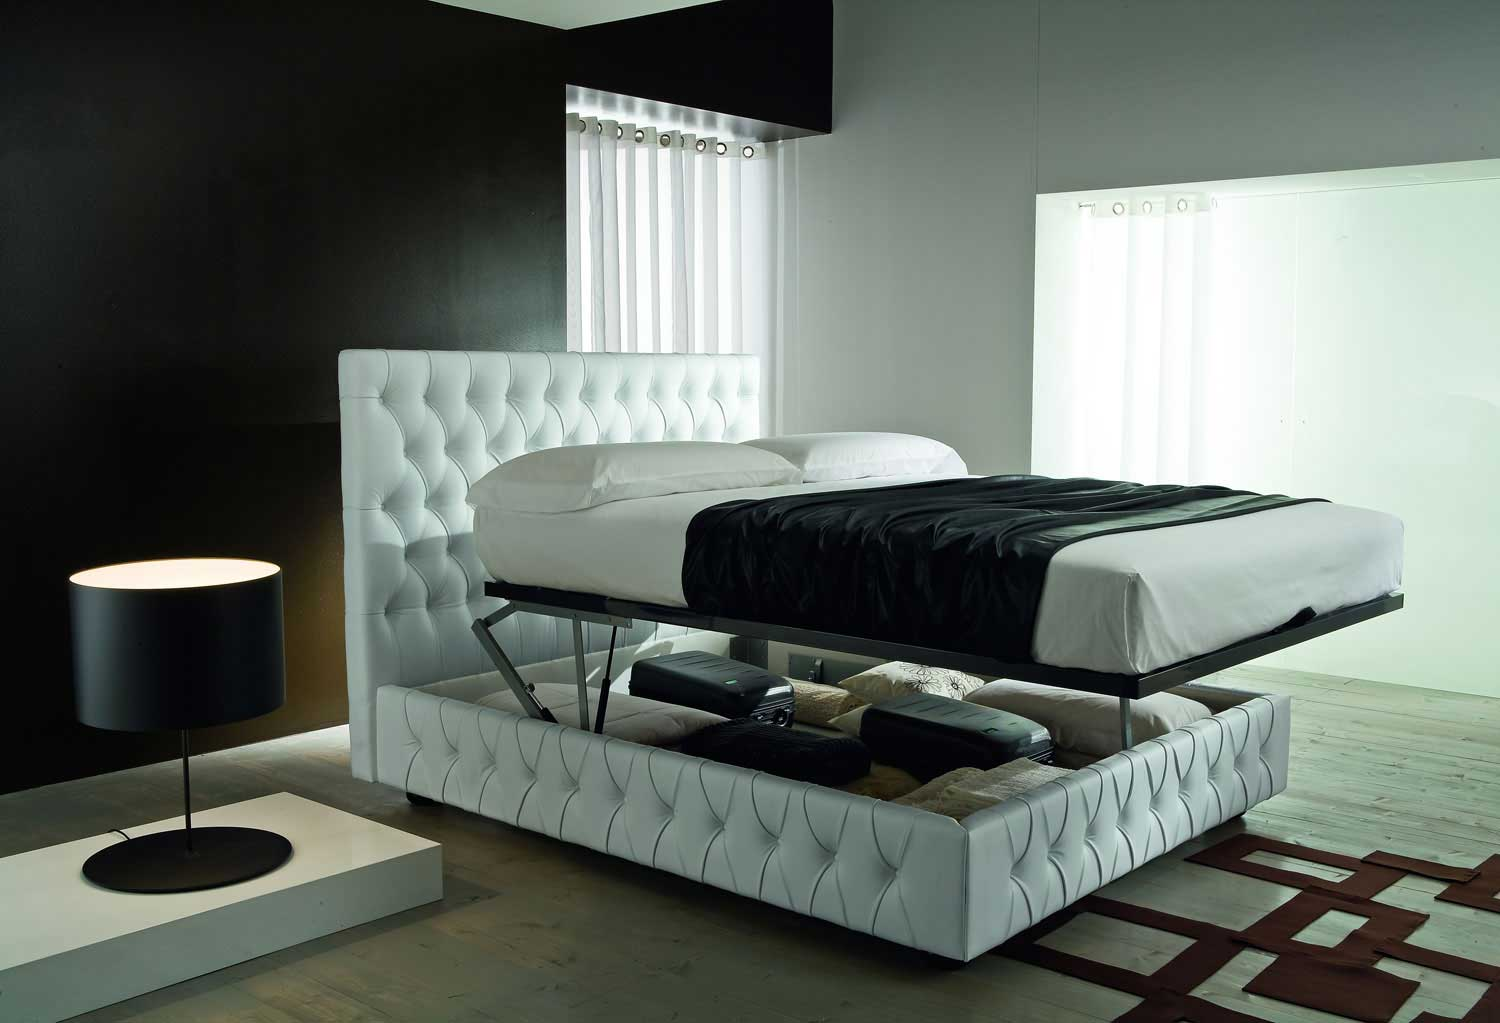 au ergew hnliche betten mit licht neuesten. Black Bedroom Furniture Sets. Home Design Ideas